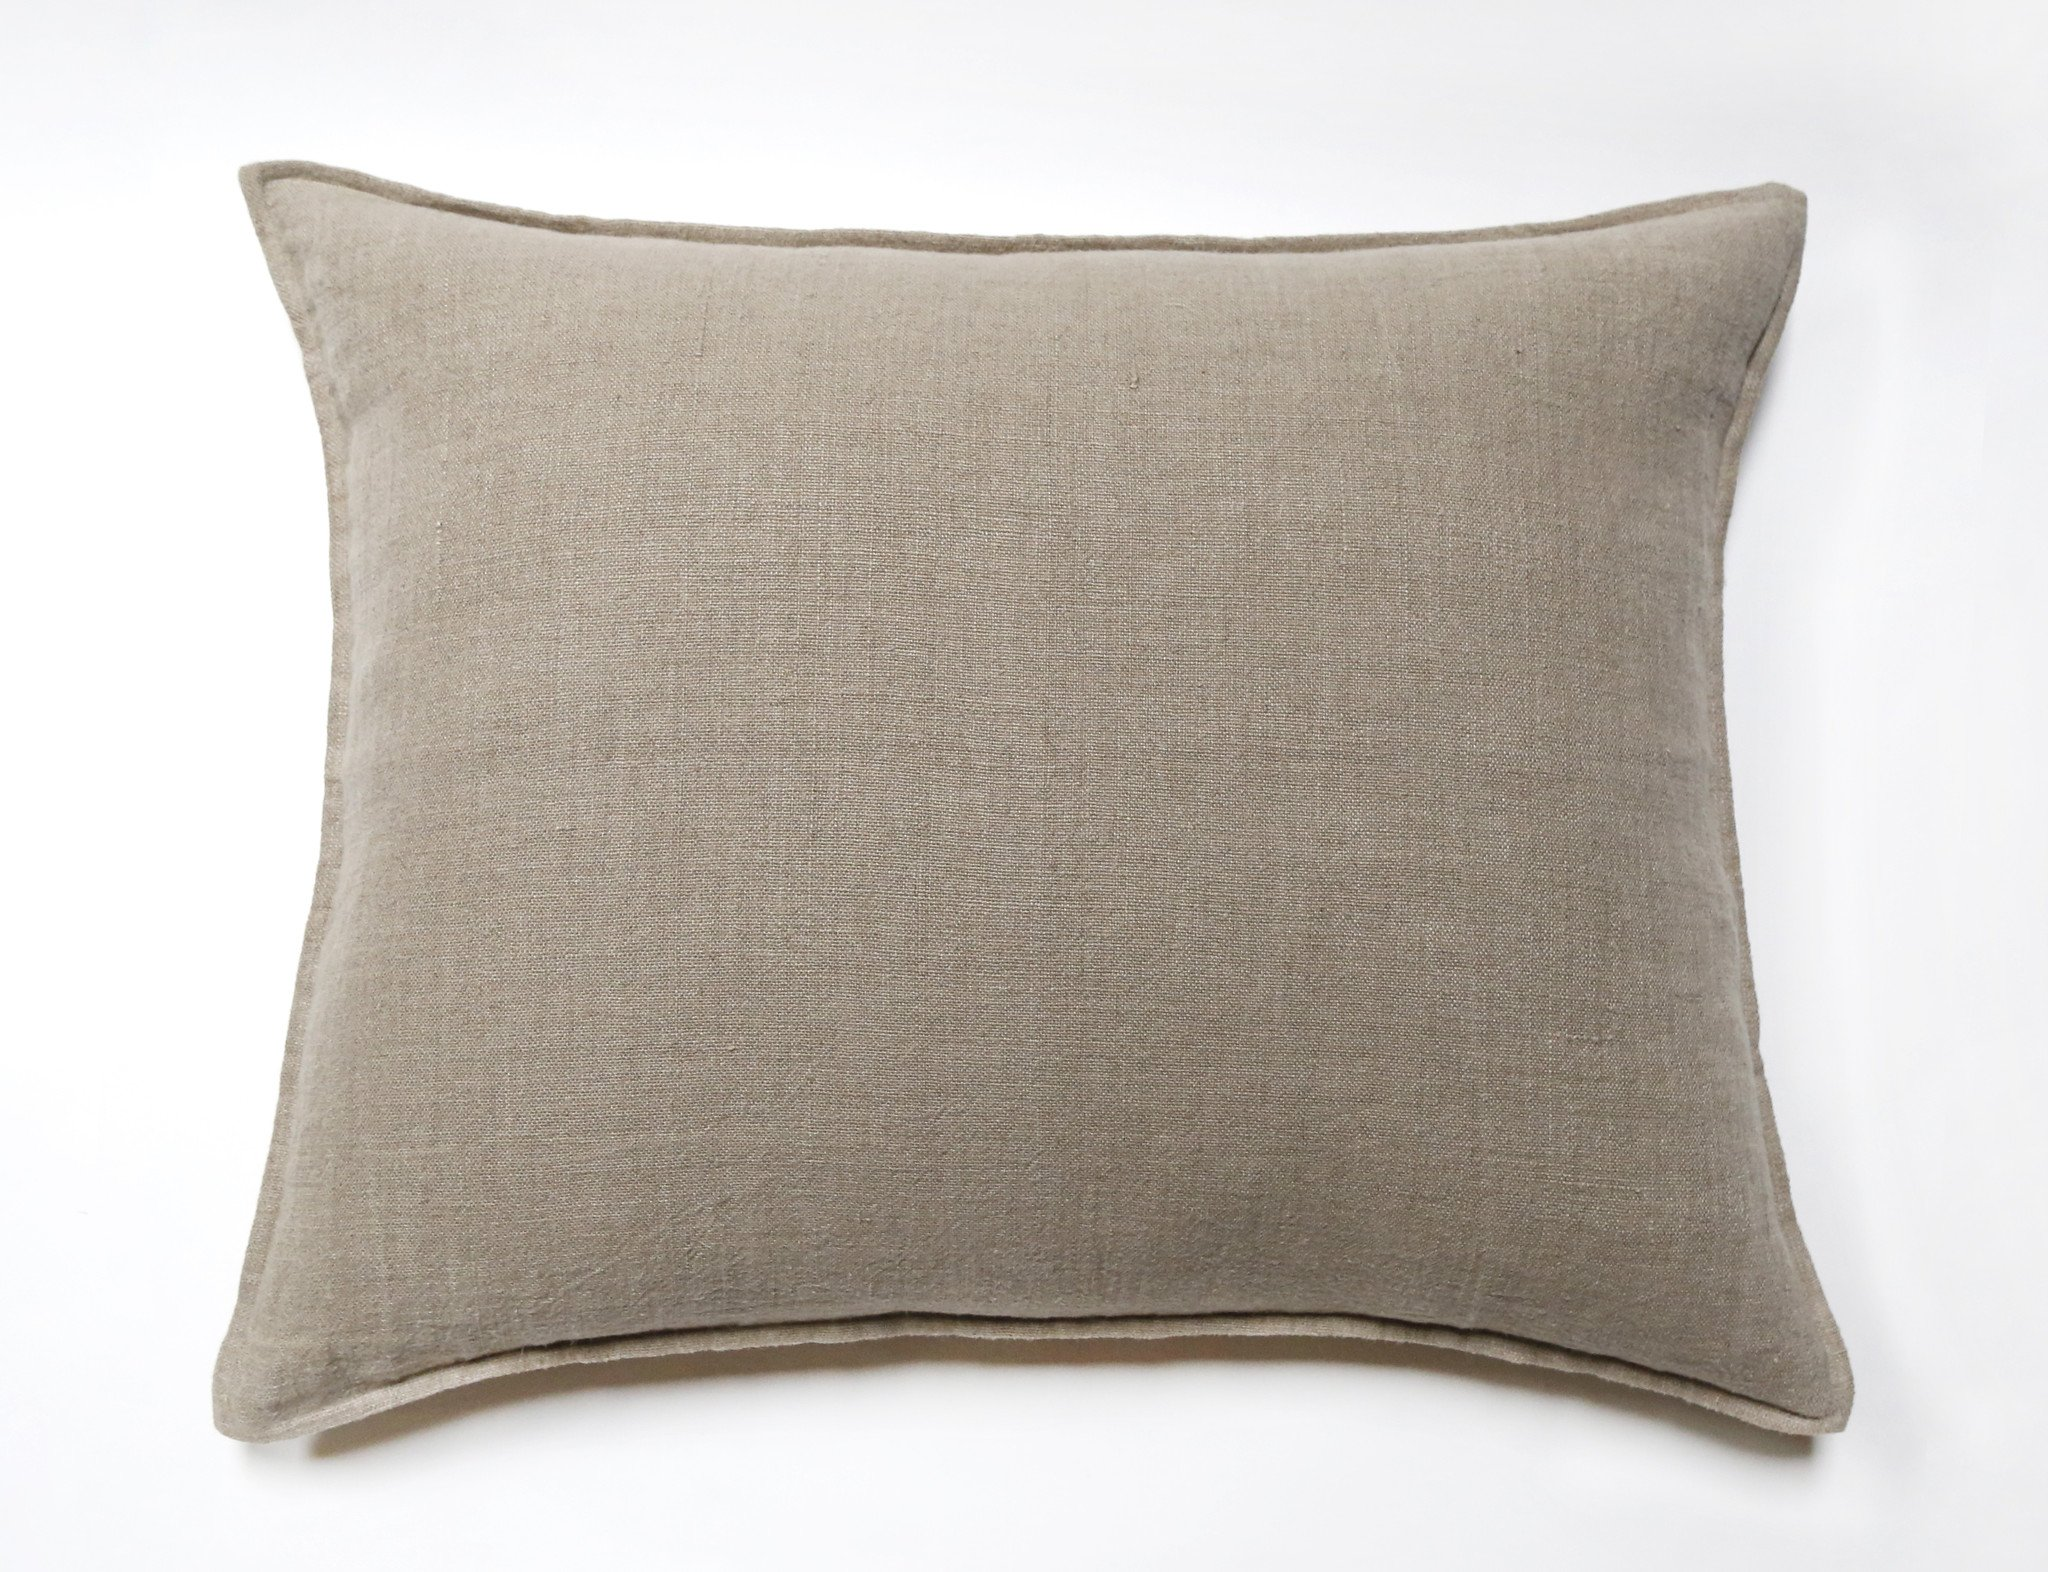 36 X 36 Pillow Insert.Montauk Big Pillow 28 X 36 With Insert Products Large